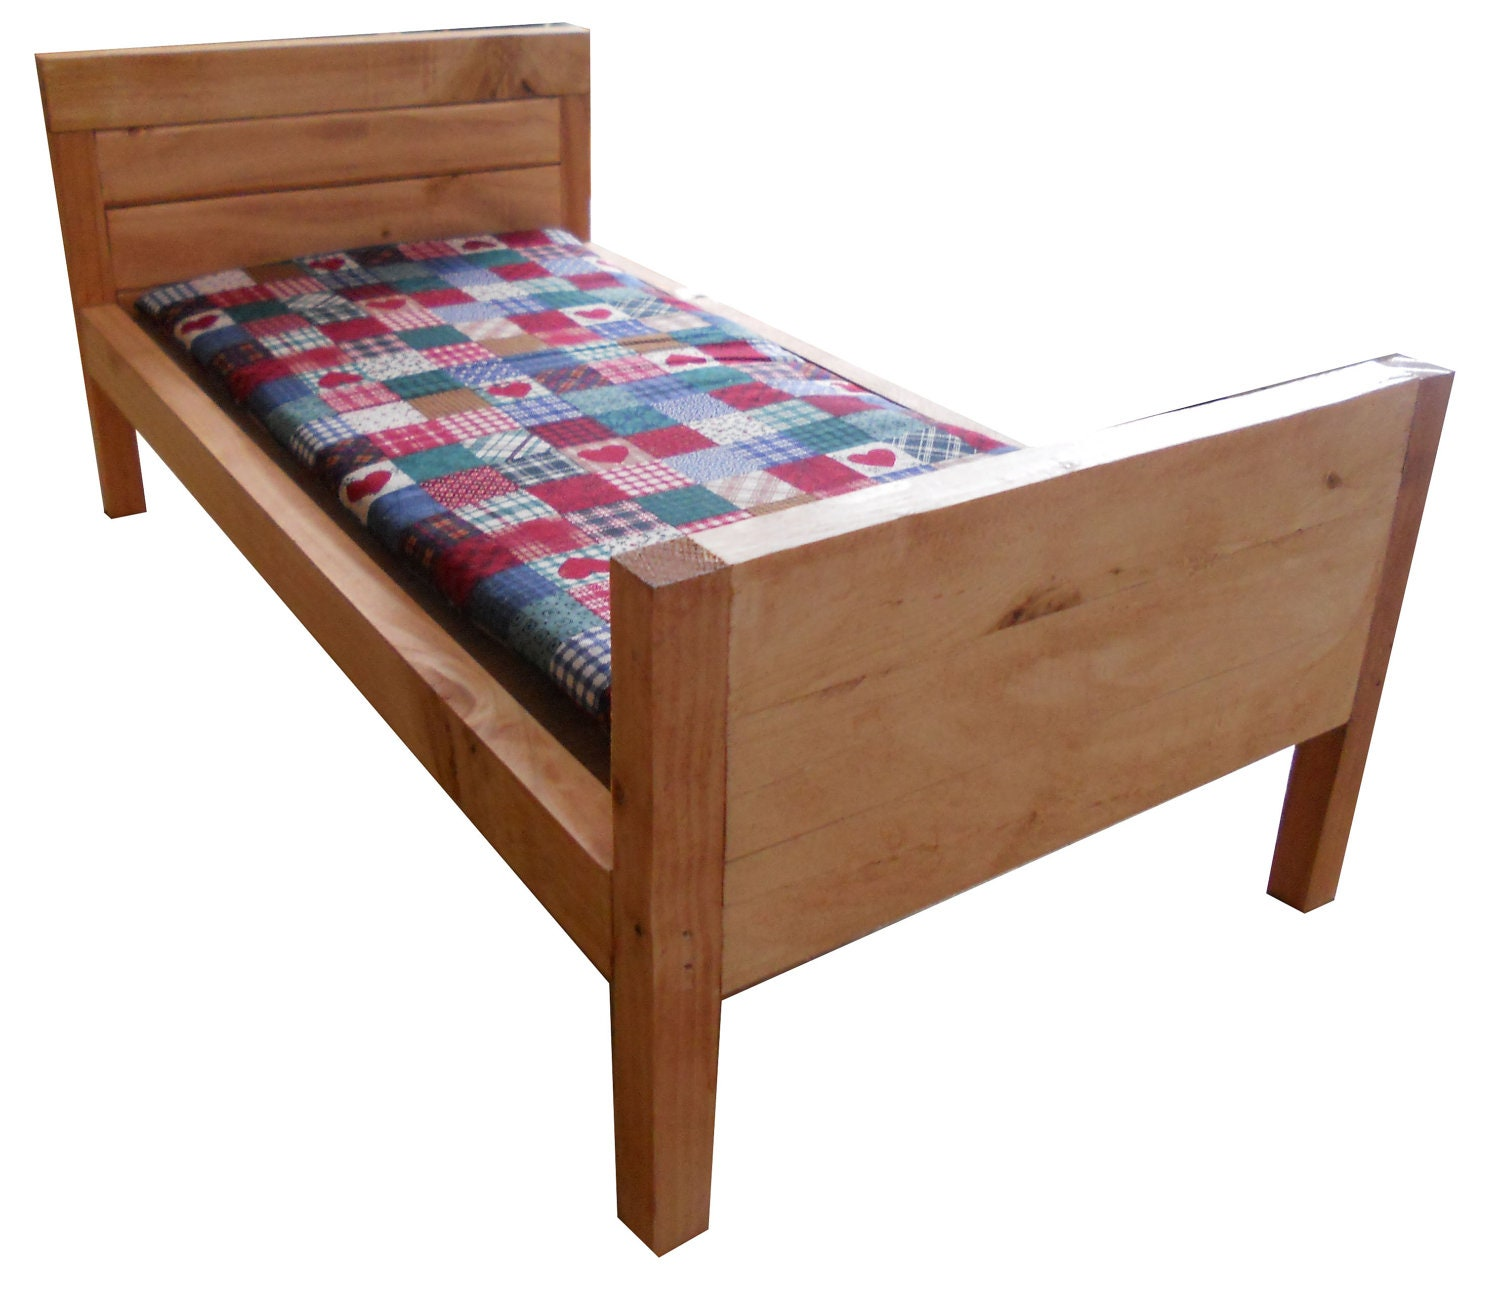 Marvelous photograph of Wooden Doll Bed Fits An 18 to 20 Inch Doll by BusyBeaverToys with #764126 color and 1500x1289 pixels